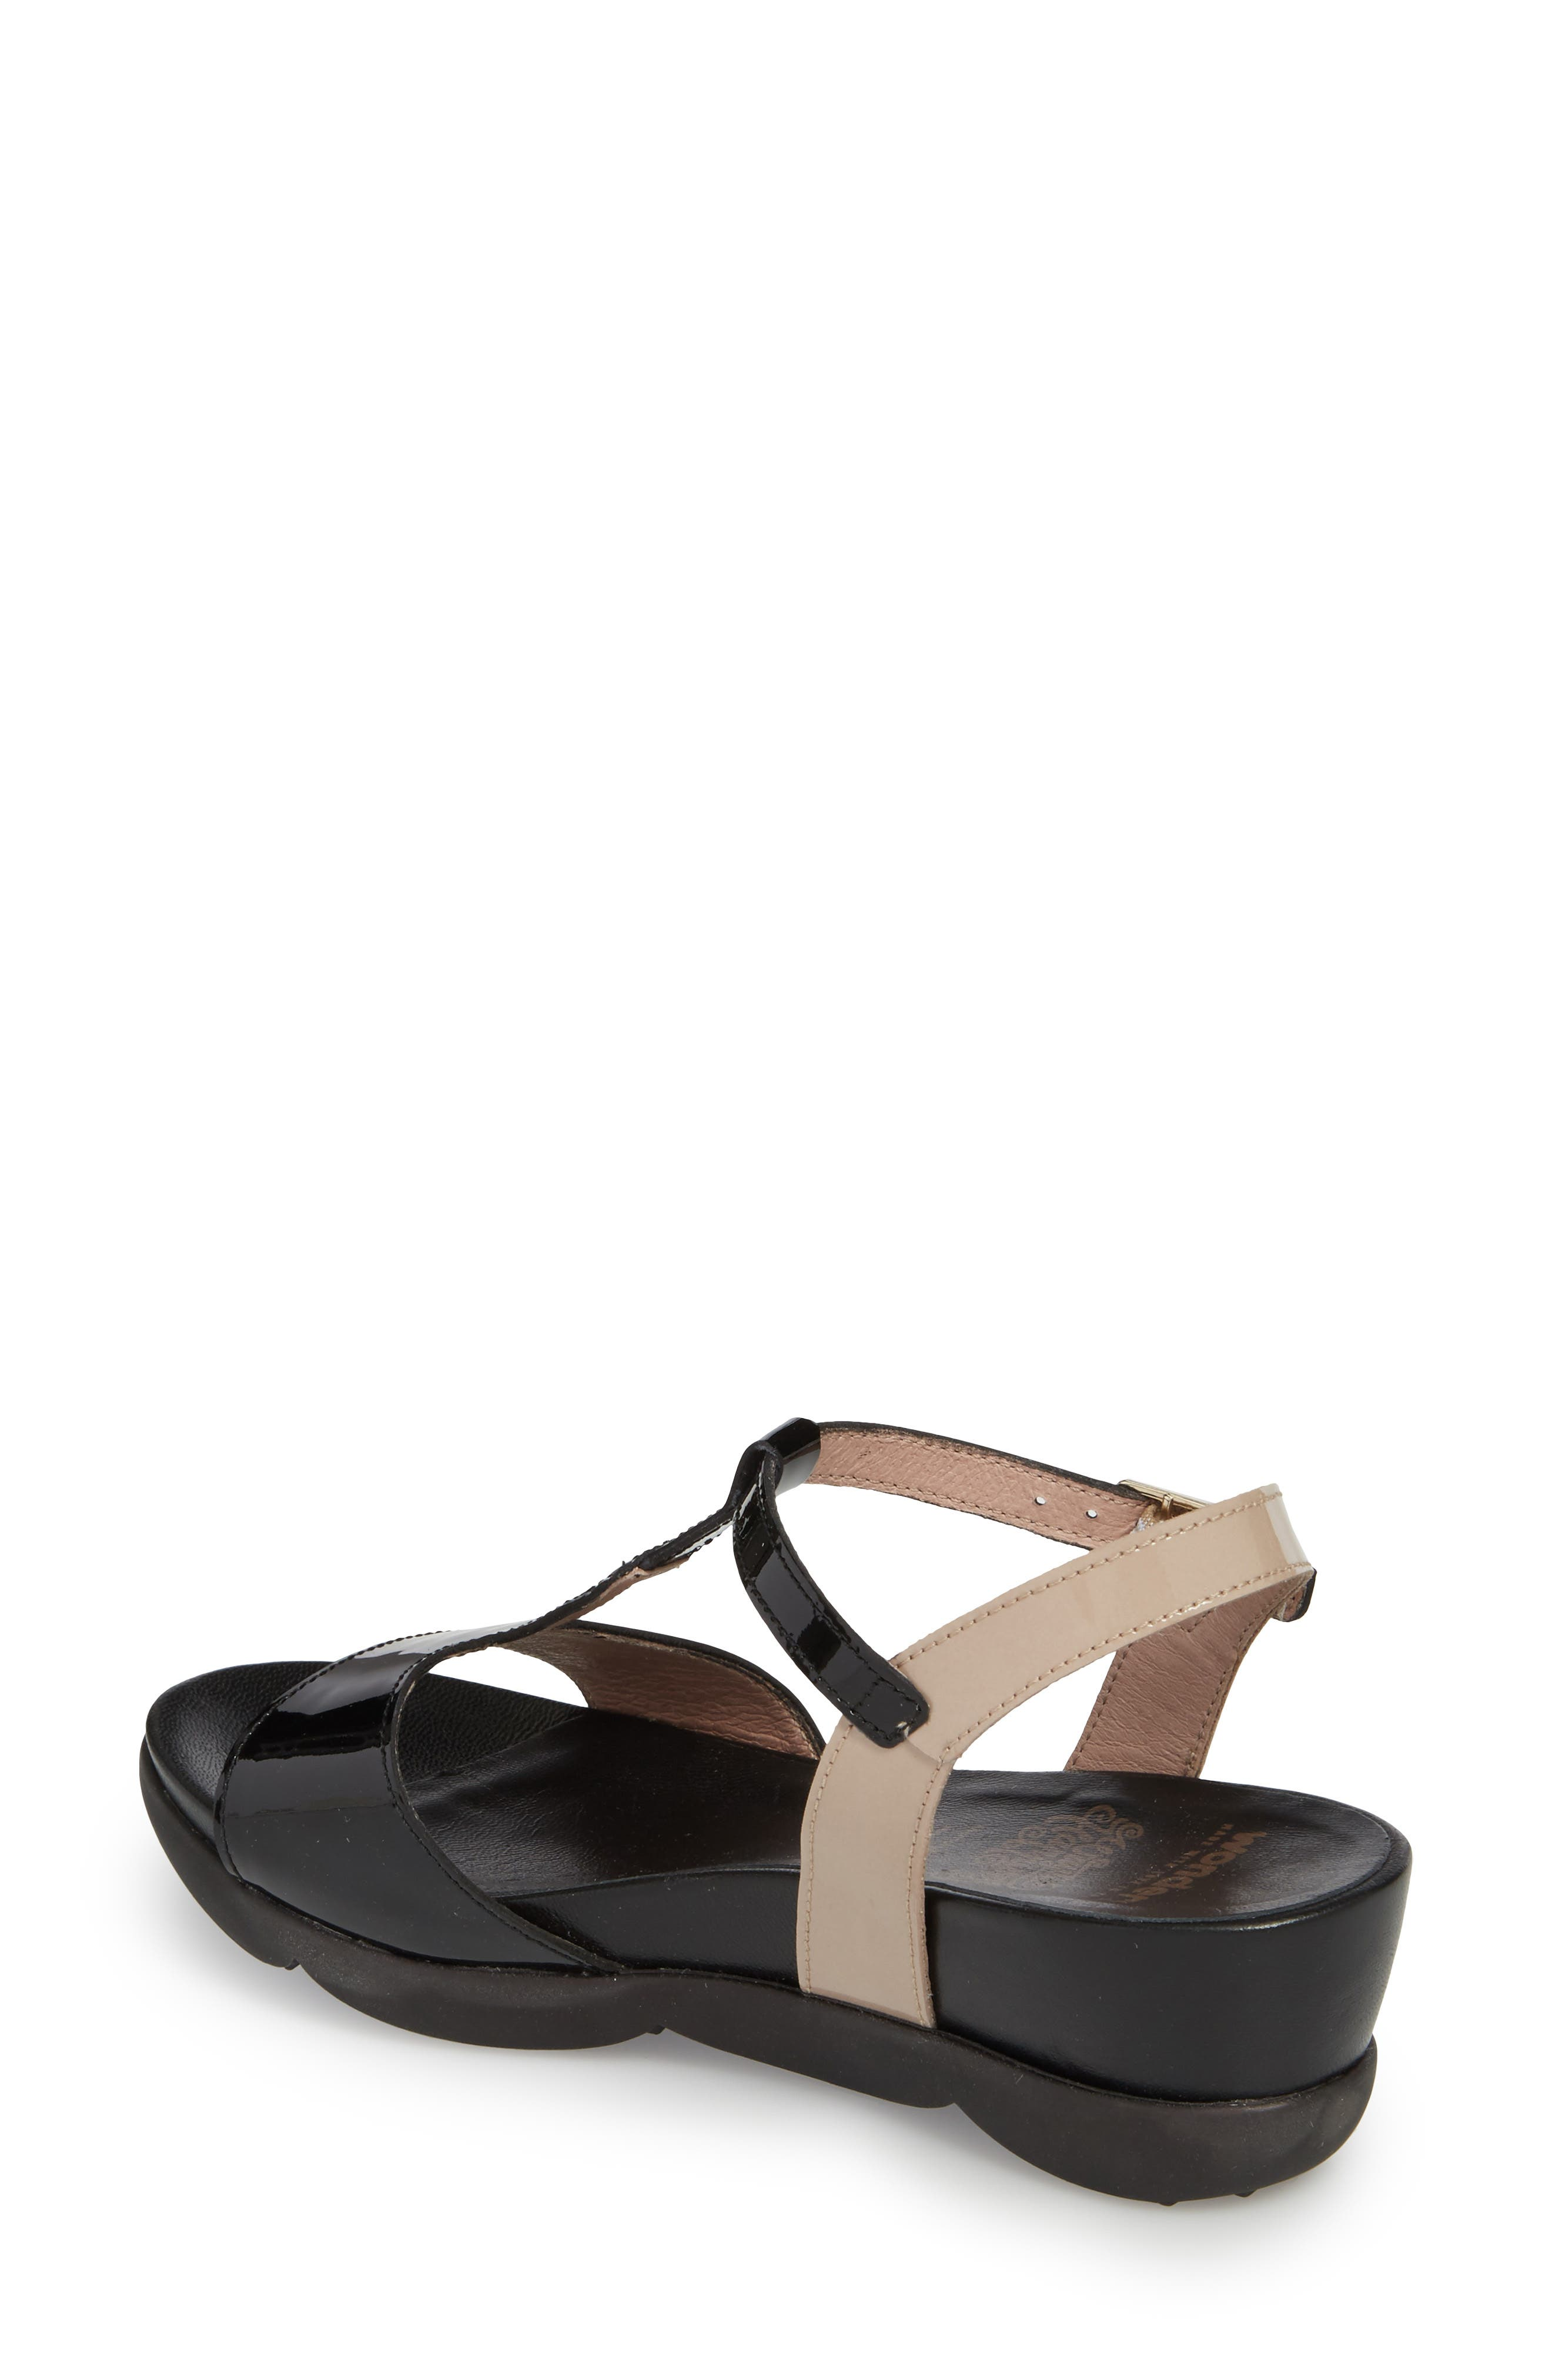 Wedge Sandal,                             Alternate thumbnail 2, color,                             BLACK/ TAUPE LEATHER